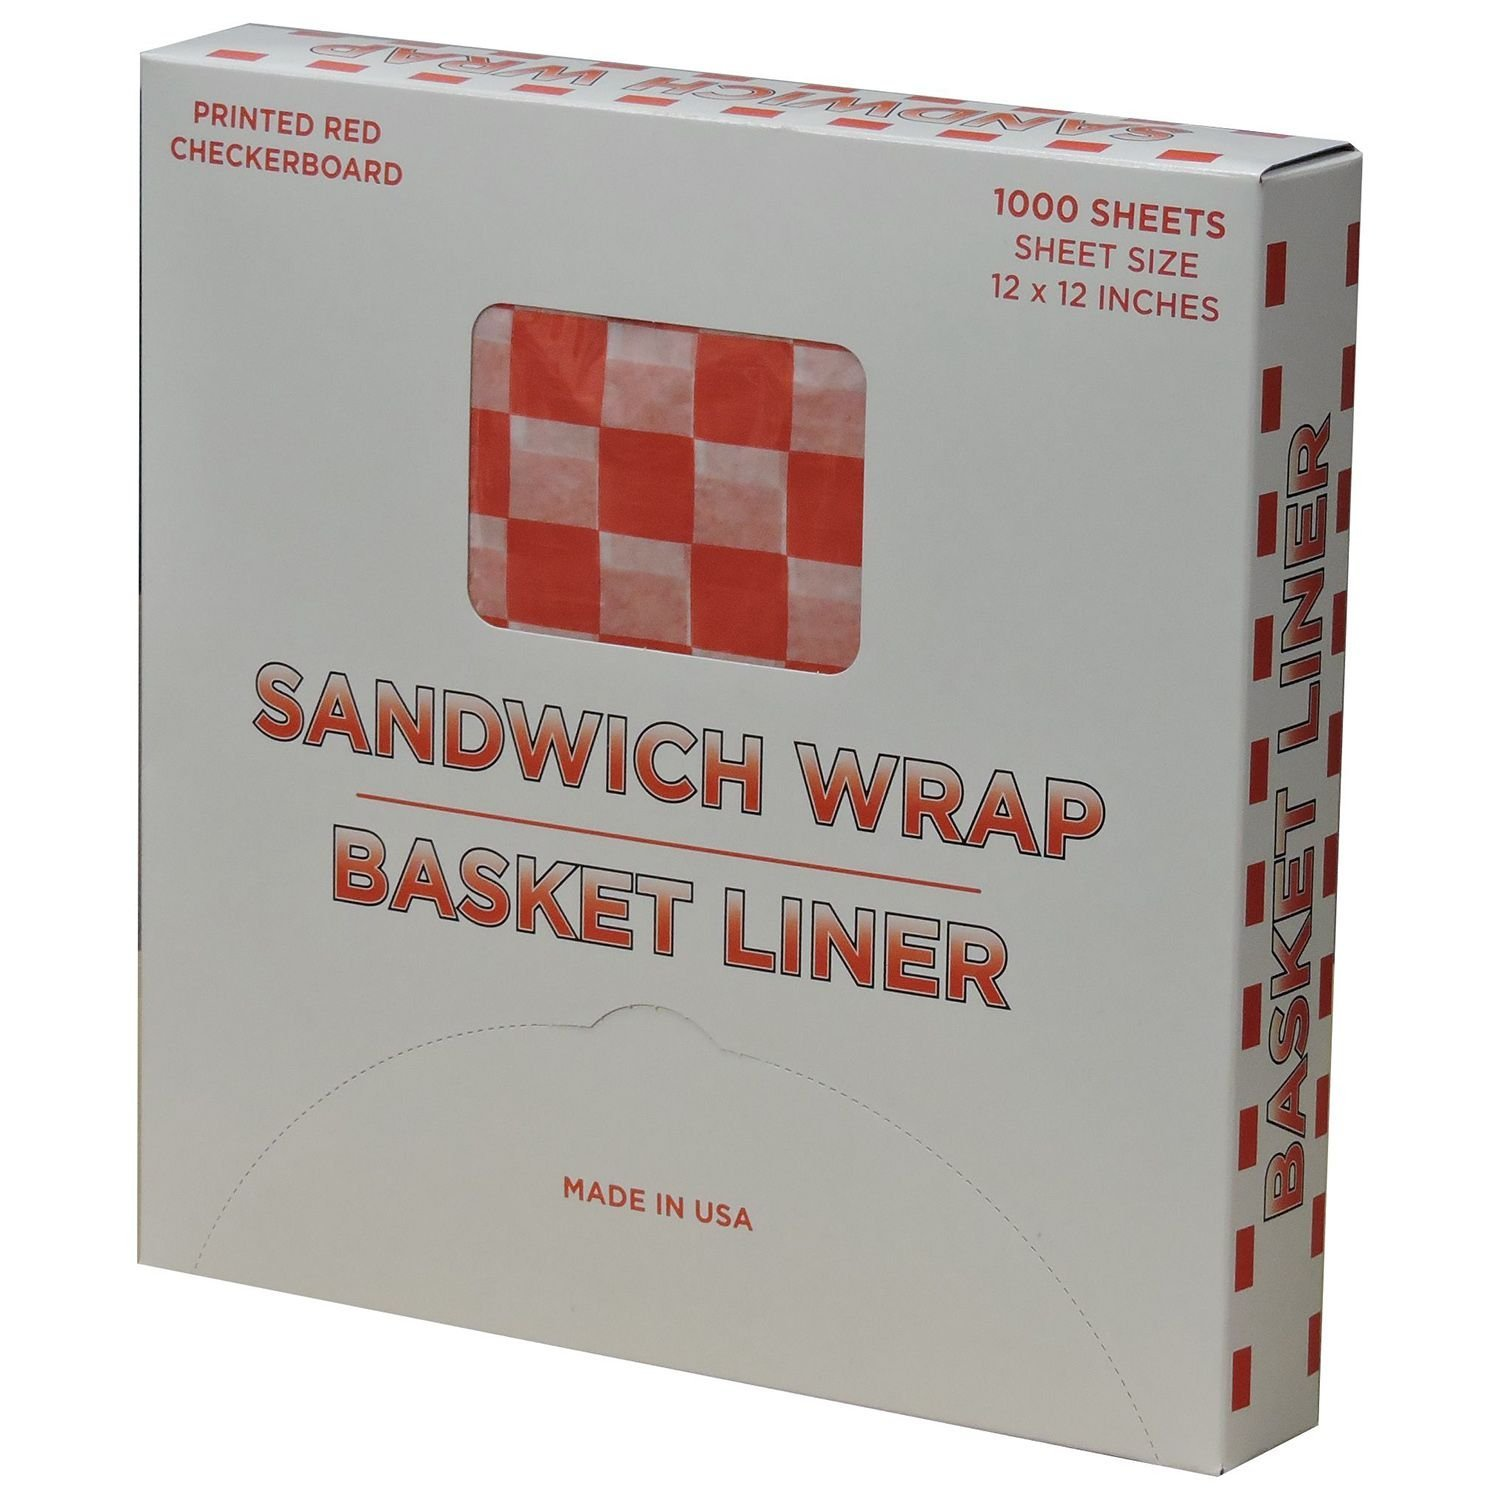 Red Checkered Sandwich Wrap & Basket Liners - 1000 sheets, Grease Resistant, Basket Liner, Microwavable By Handy Wacks